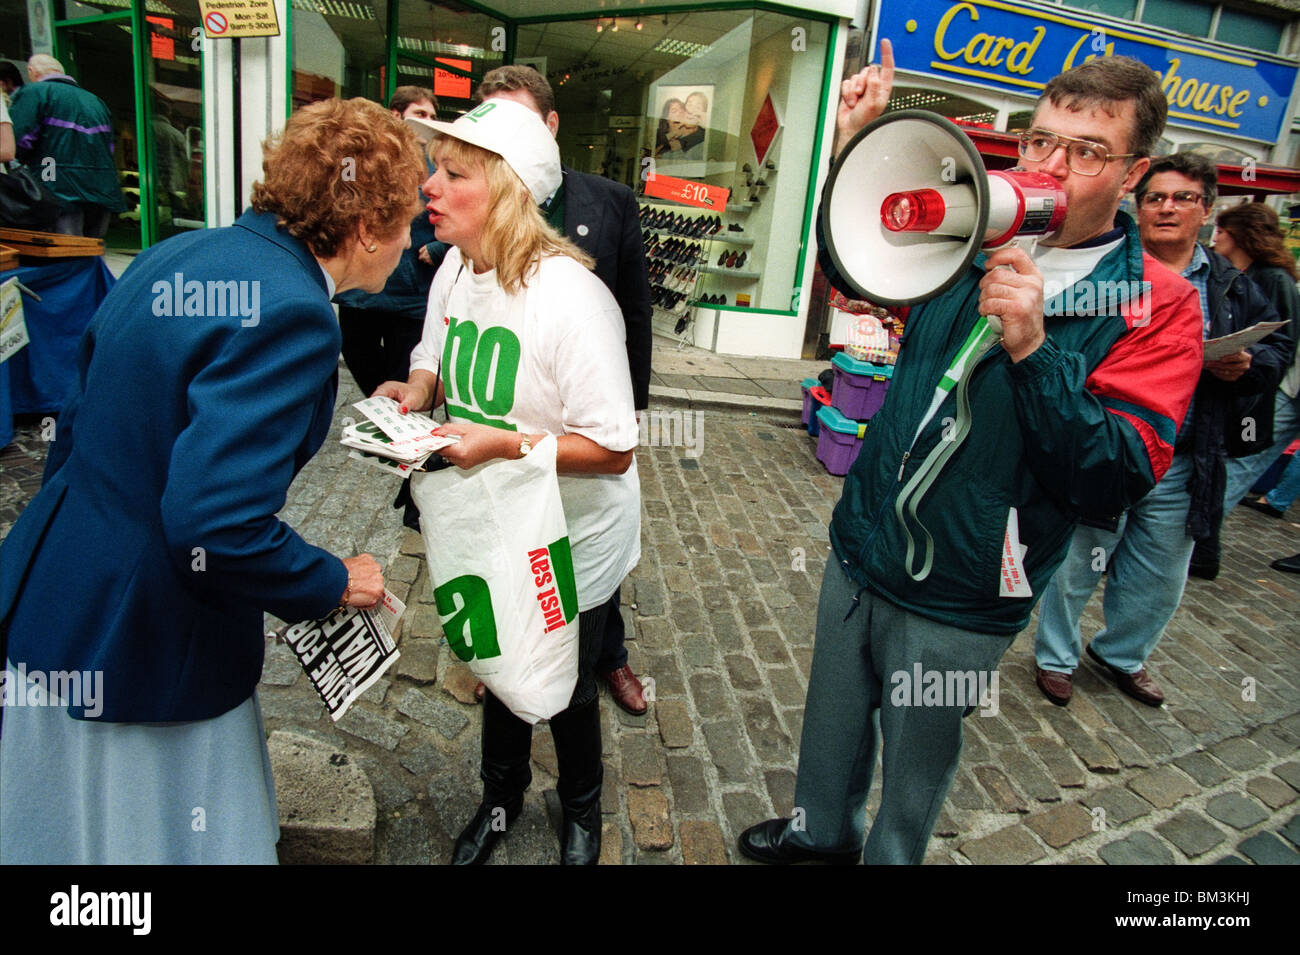 JUST SAY NO campaigners leafleting in Pontypridd for their 1997 Referendum NO campaign against a National Assembly - Stock Image